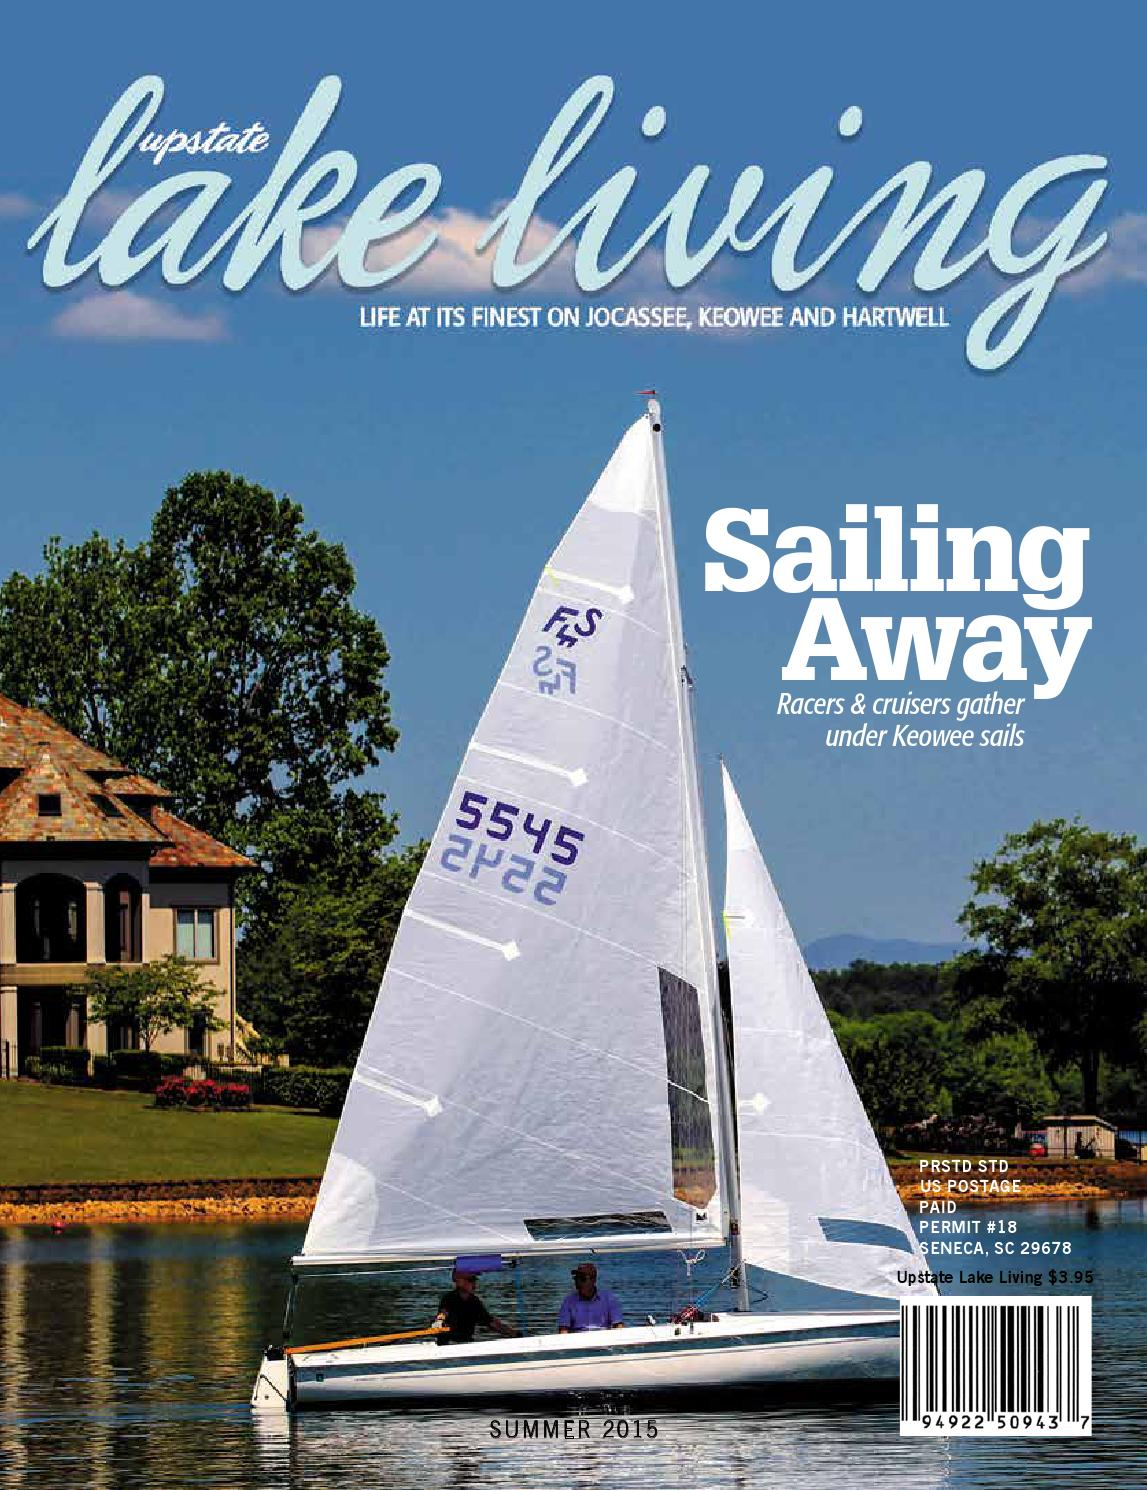 Upstate Lake Living Summer 2015 by EDWARDS PUBLICATIONS - issuu